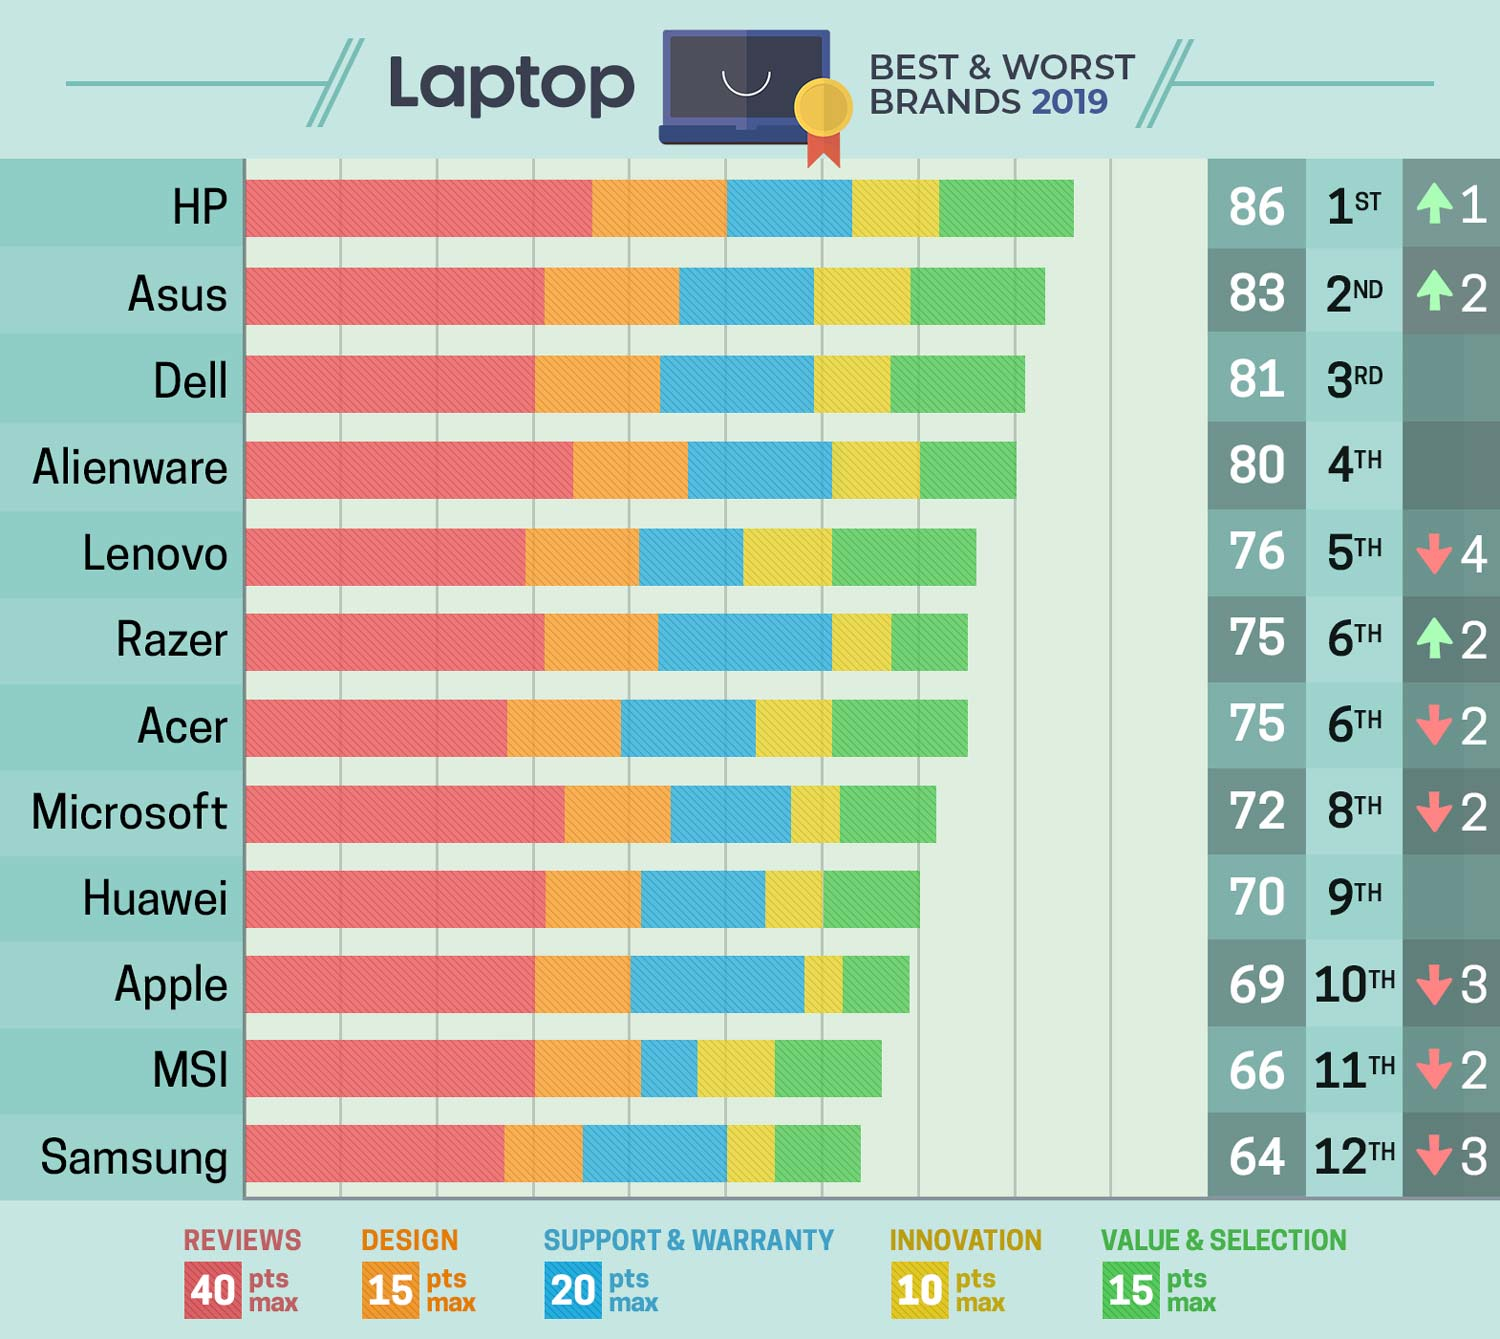 Best & Worst Laptop Brands 2019